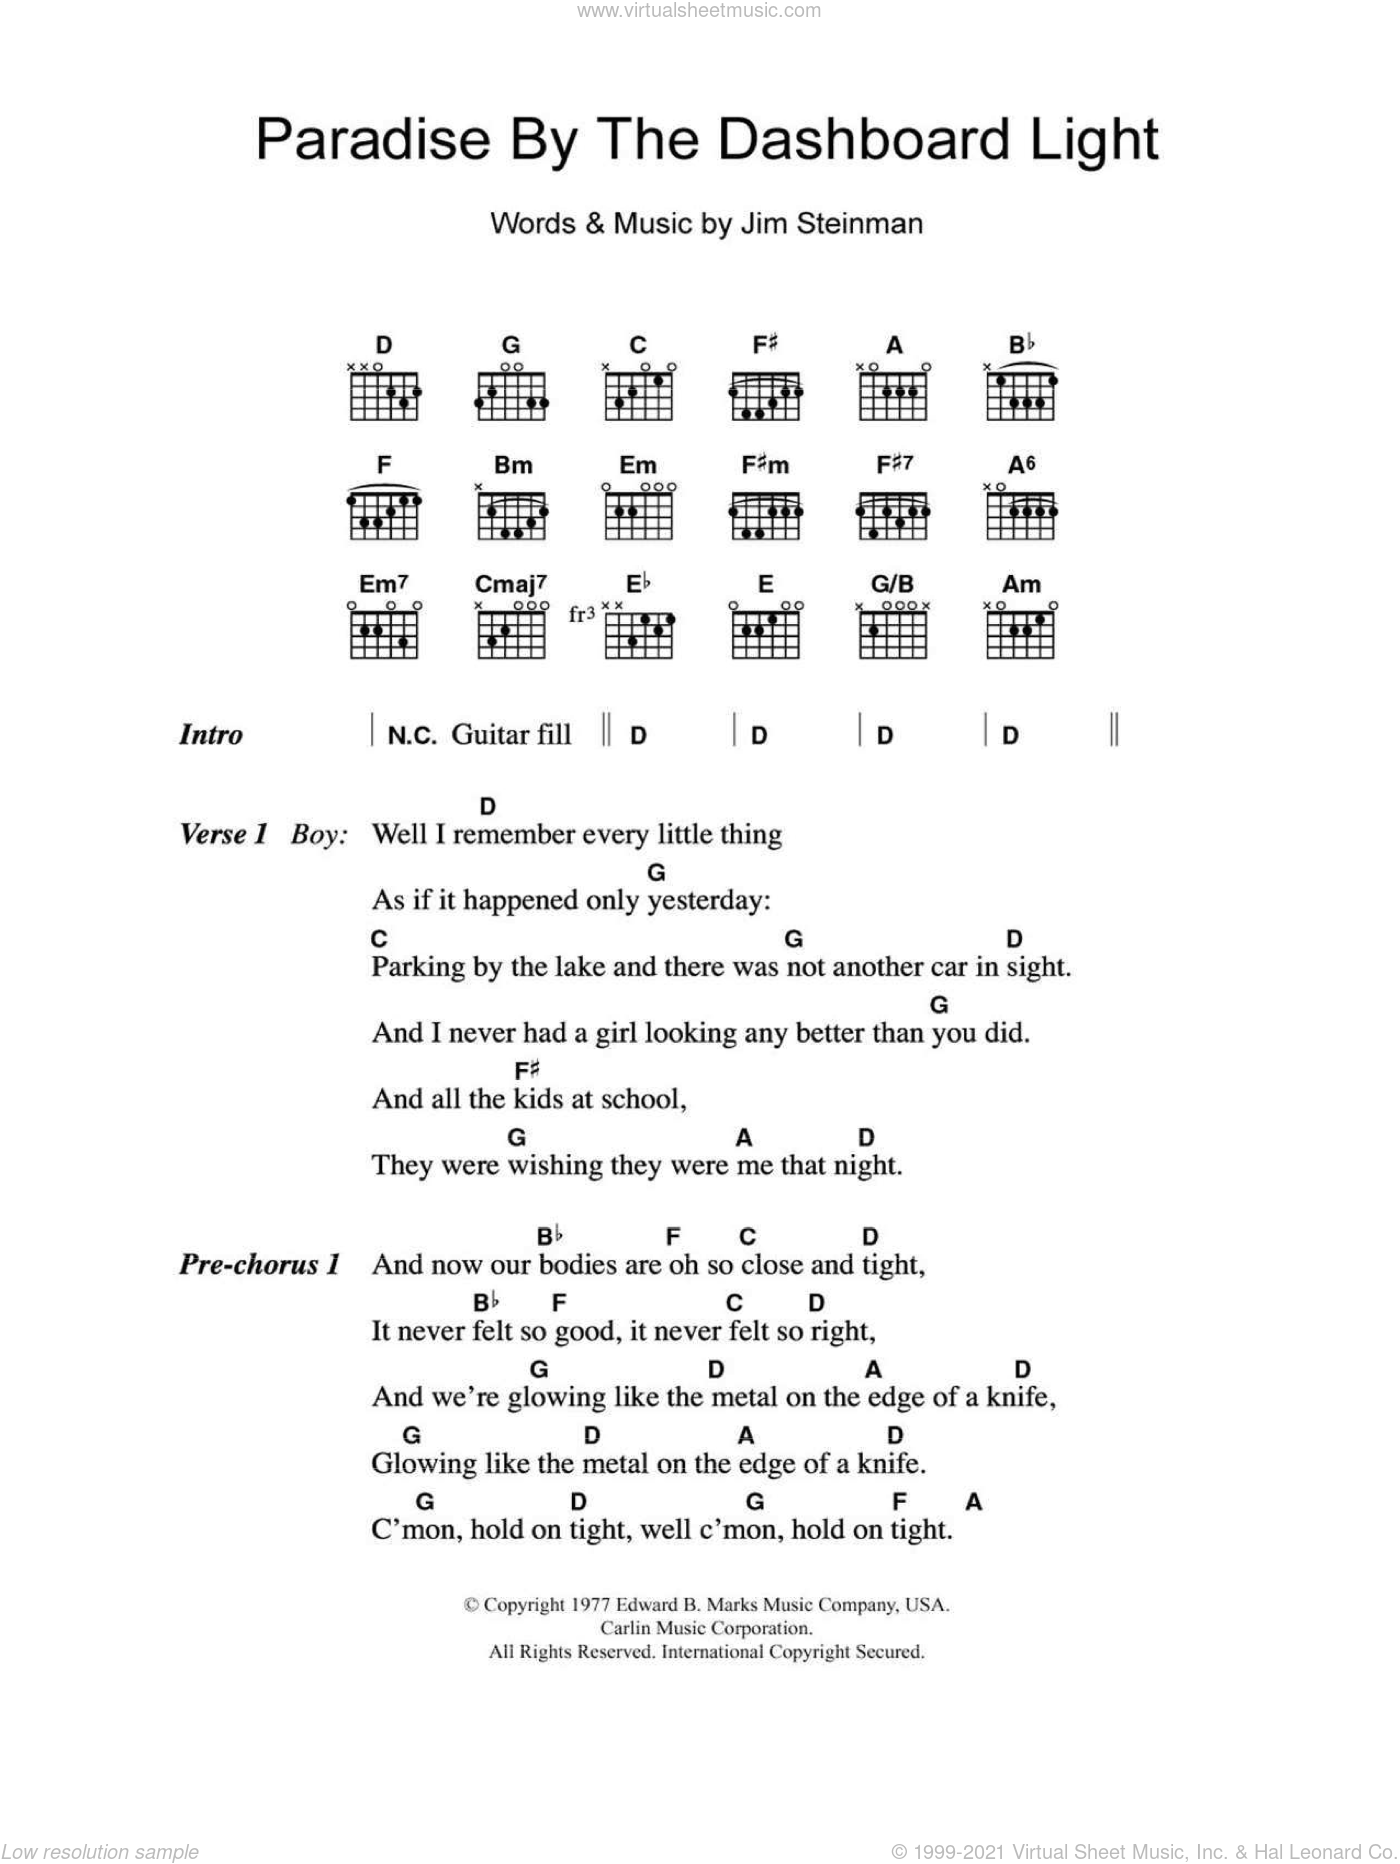 Paradise By The Dashboard Light sheet music for guitar (chords) by Jim Steinman. Score Image Preview.